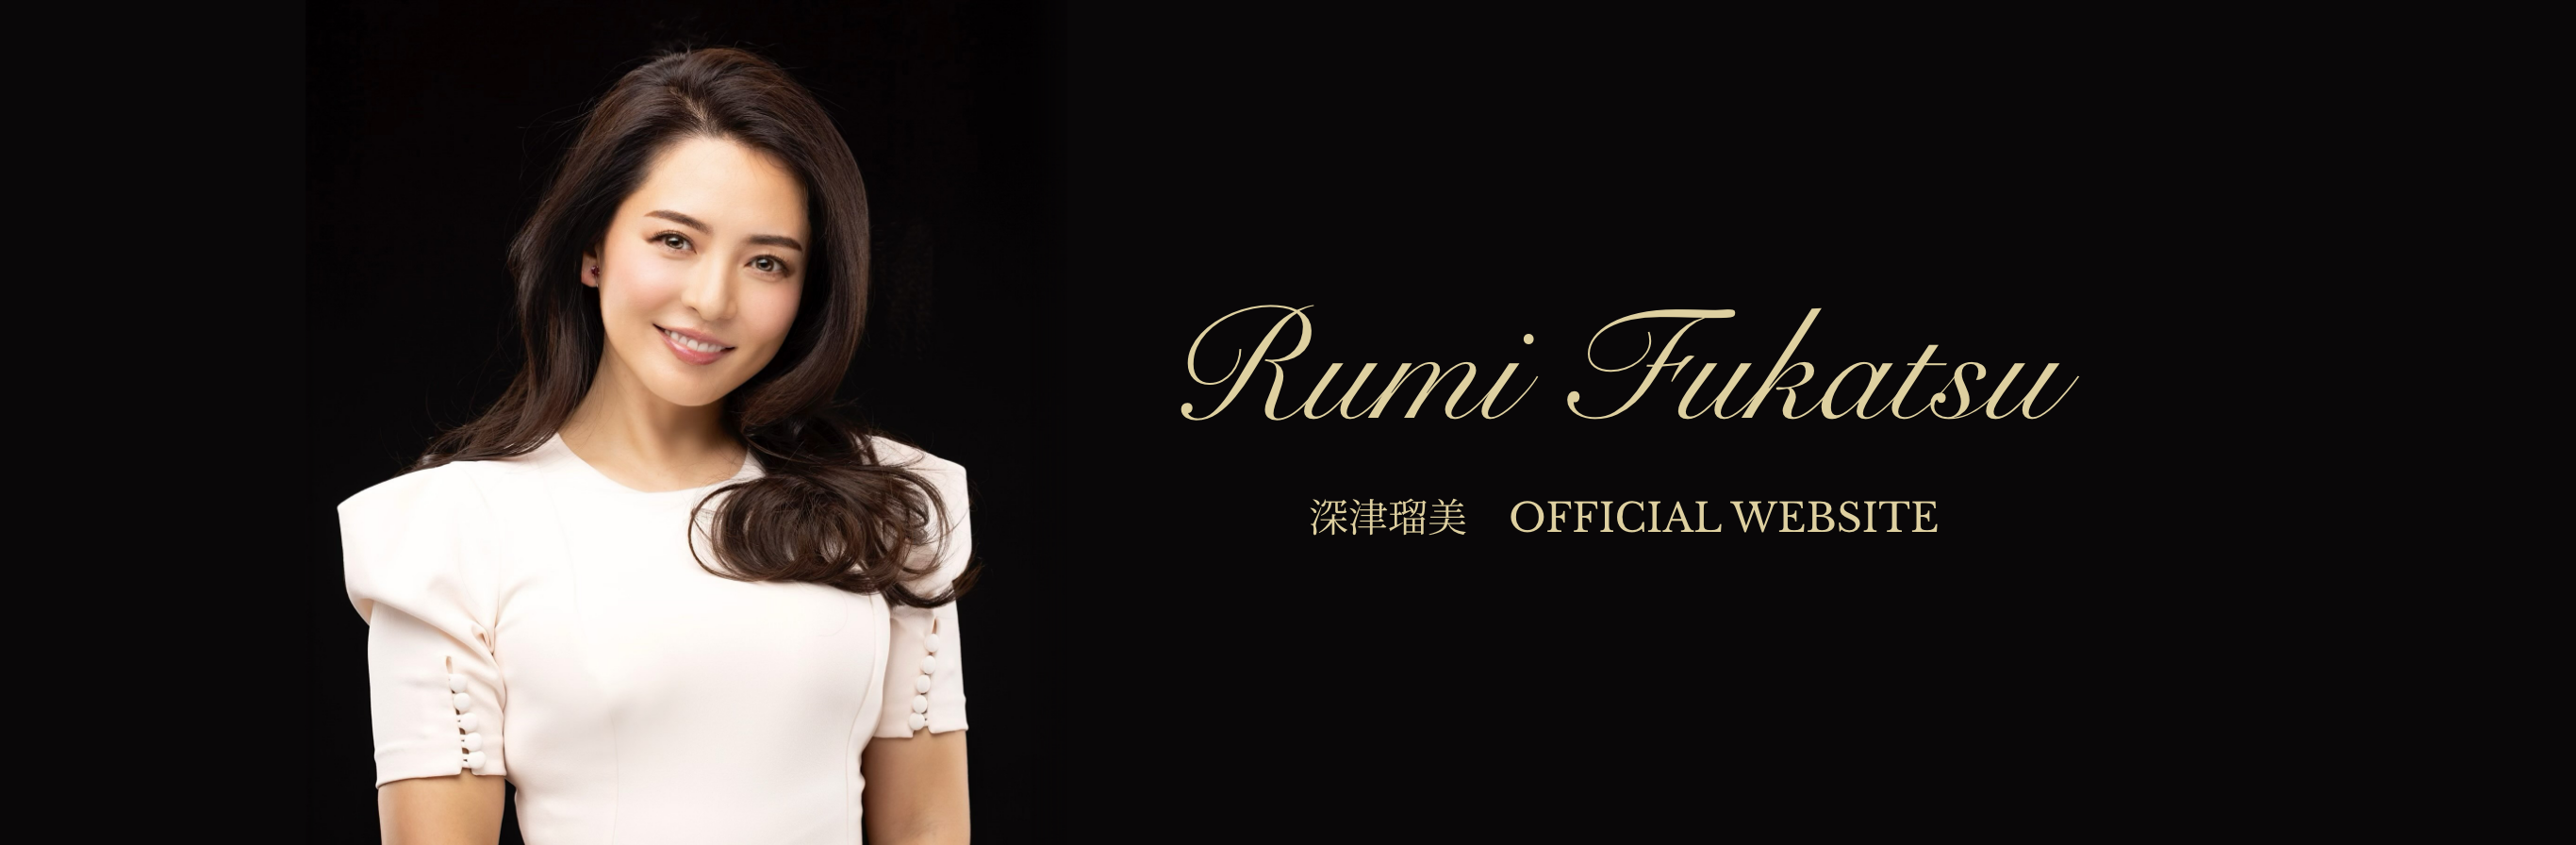 深津瑠美 OFFICIAL WEBSITE